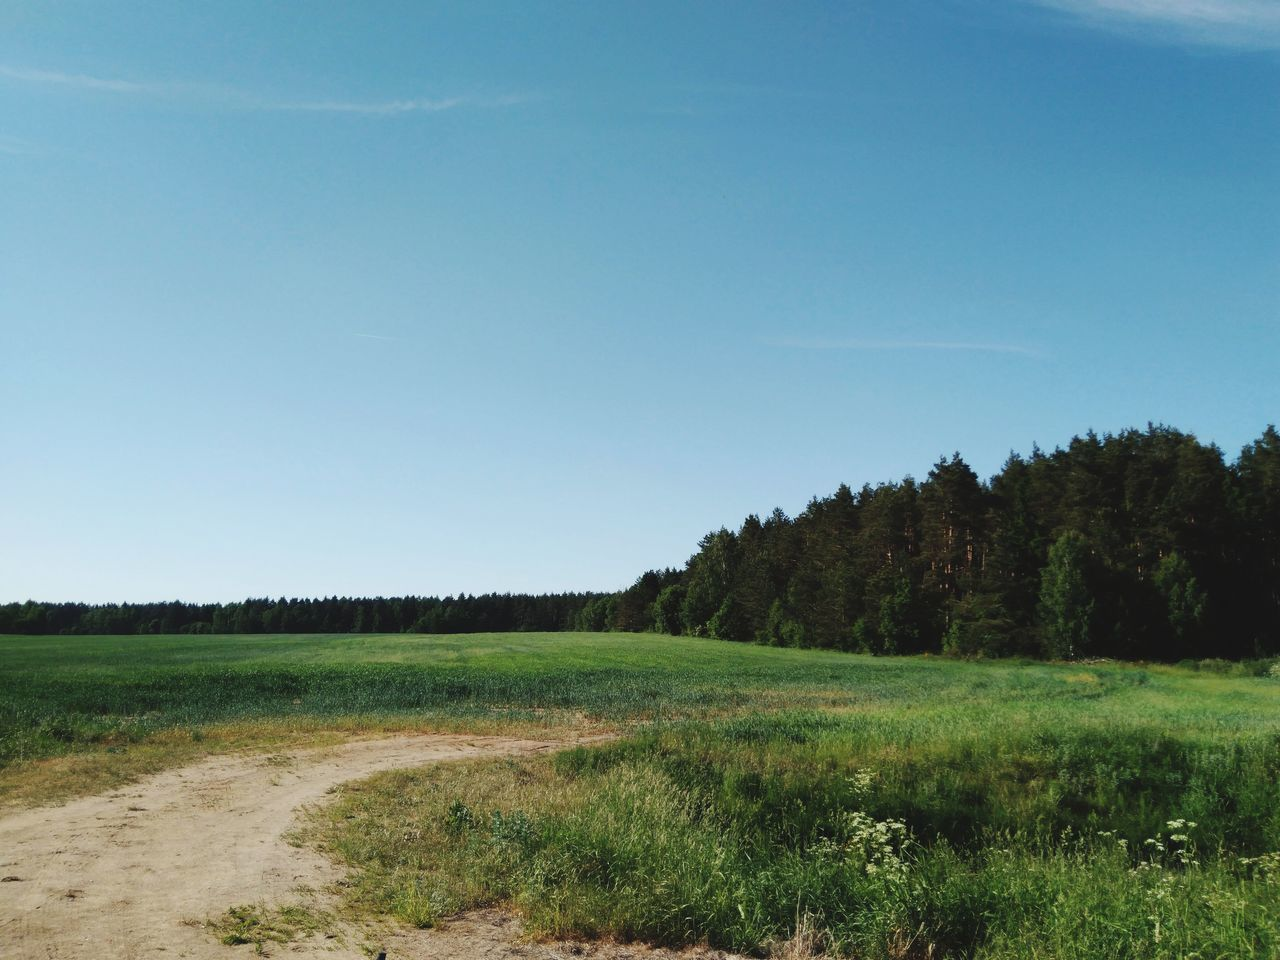 landscape, sky, environment, grass, land, plant, field, nature, clear sky, tree, growth, copy space, tranquility, freedom, blue, no people, tranquil scene, positive emotion, non-urban scene, vistas, outdoors